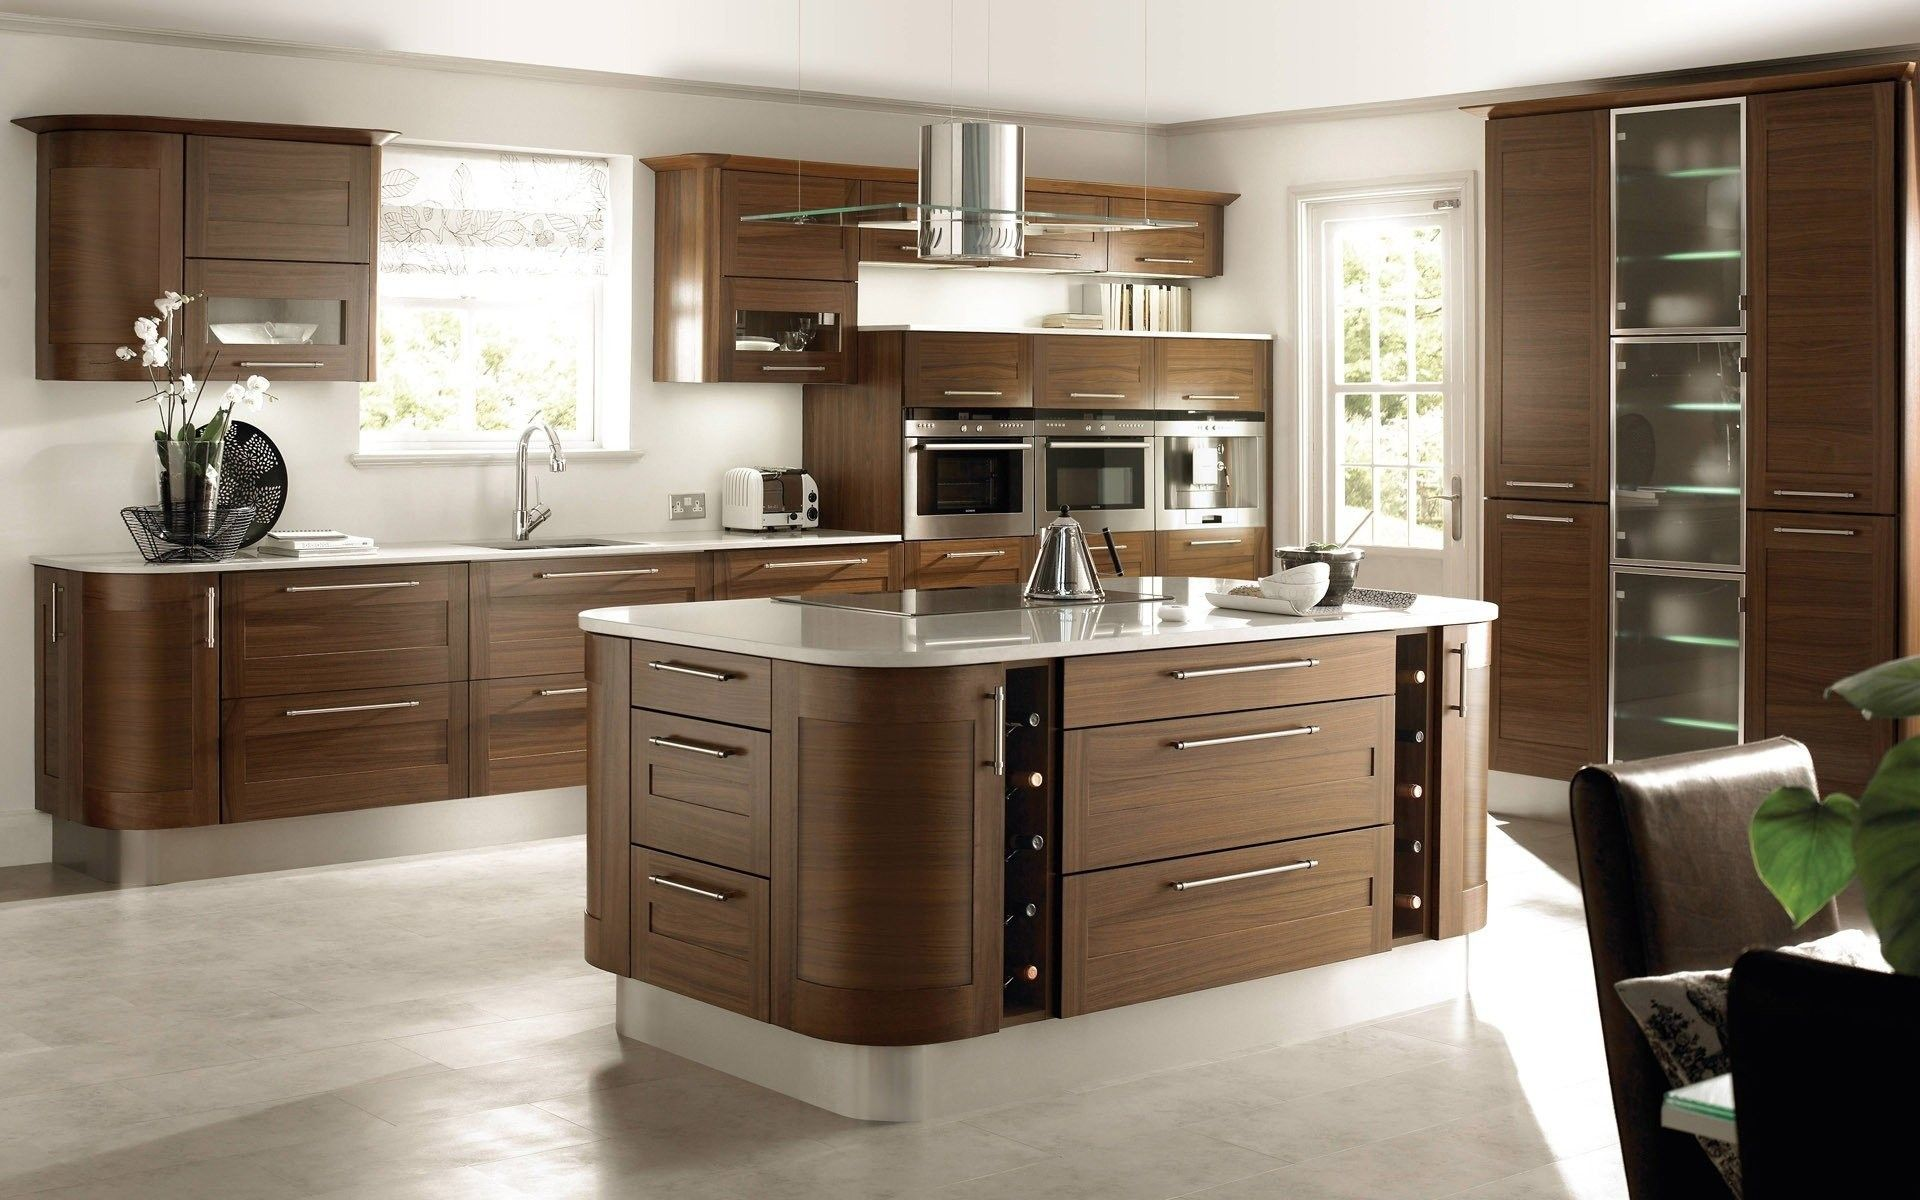 Style Your Kitchen By Designing he Furniture Designs I. swt.co - ^